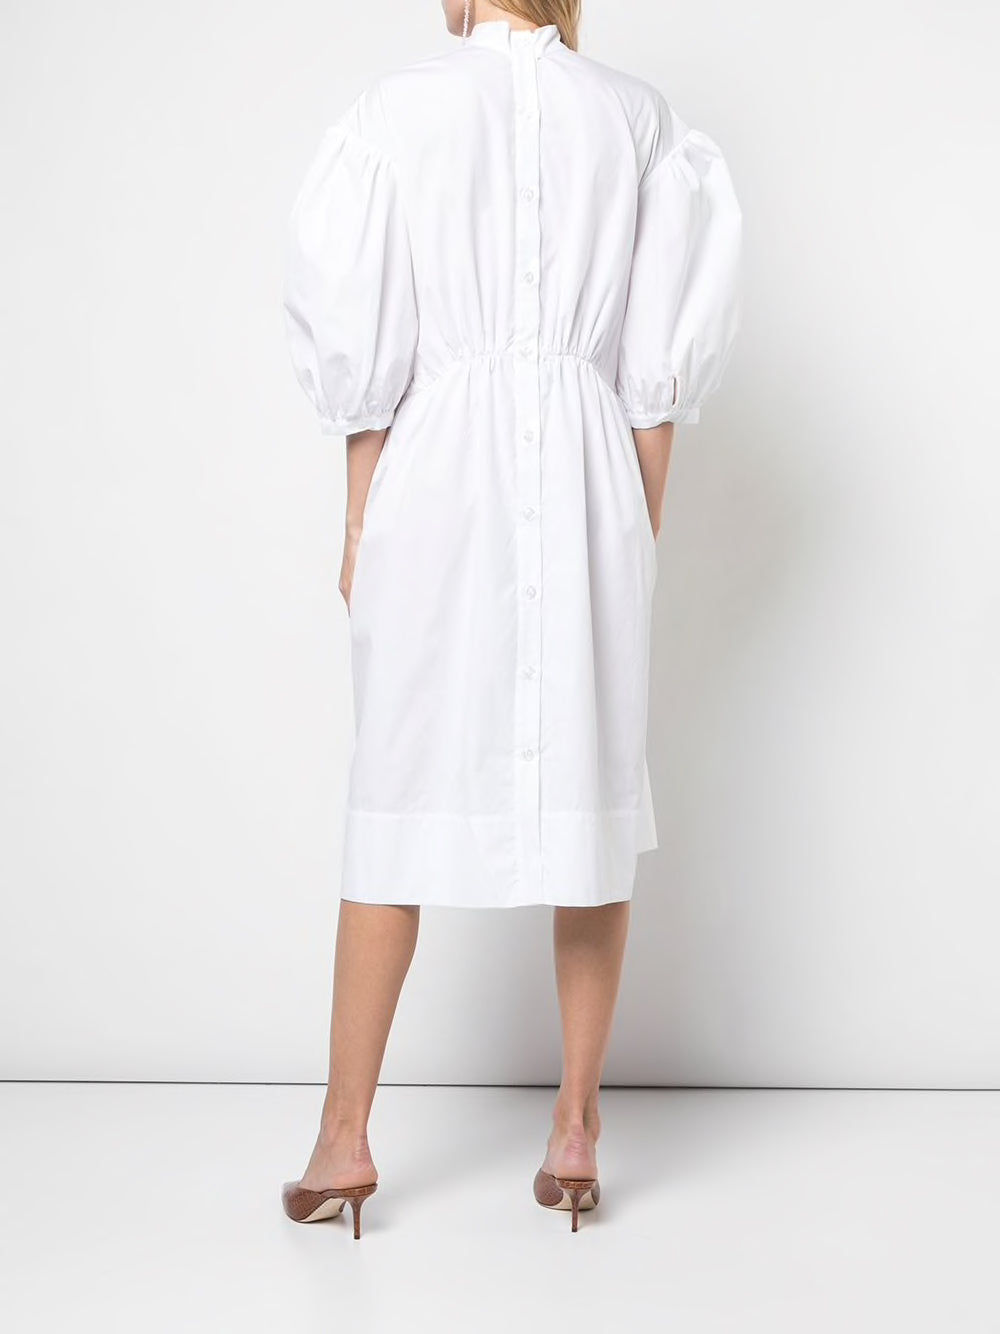 SIMONE ROCHA WOMEN PIN TUCK SMOCK DRESS LONG